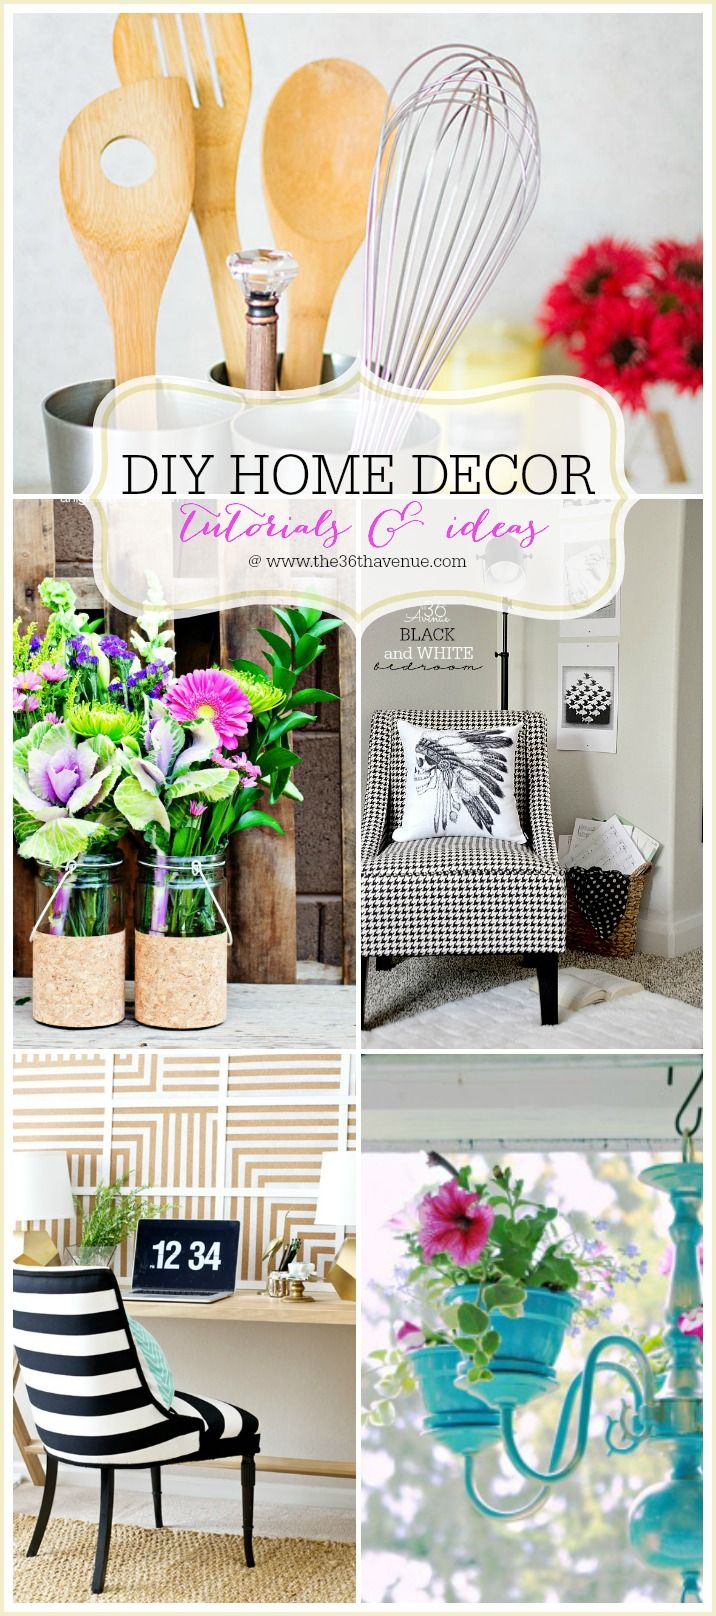 home decor diy projects - Fun Home Decor Ideas